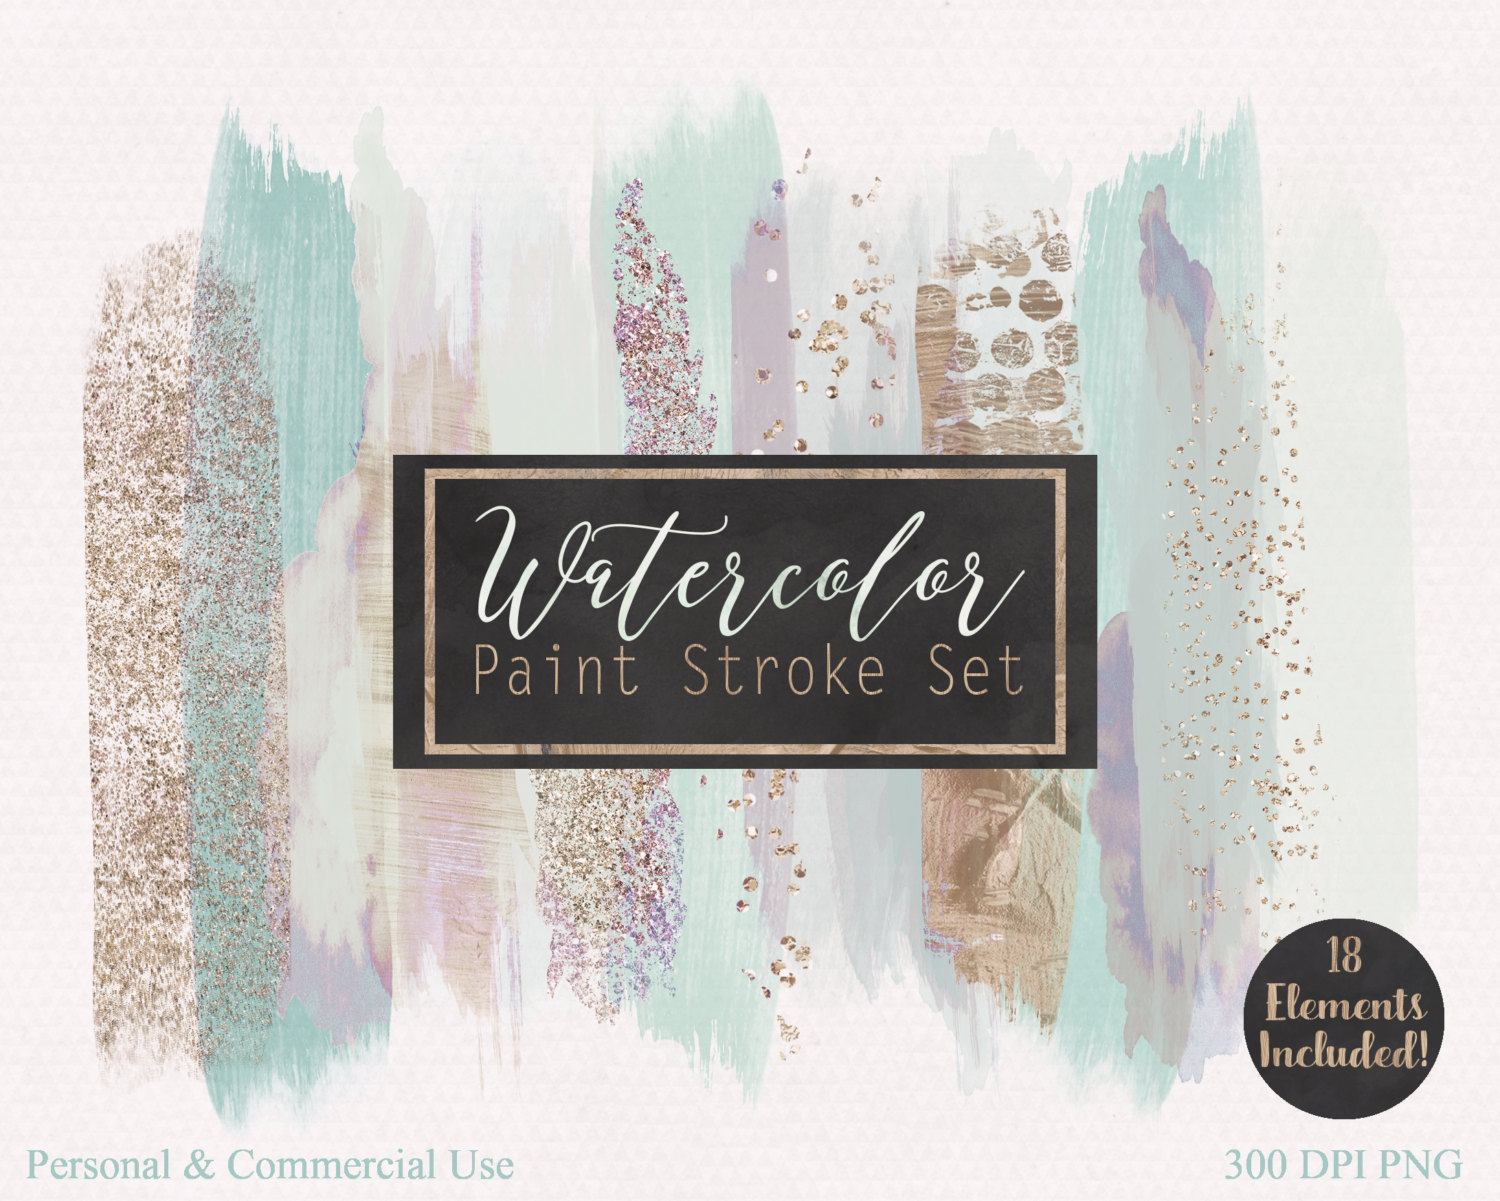 Free commercial use clipart for logo png library BRUSH STROKE Clip Art Commercial Use Clipart Watercolor Paint ... png library